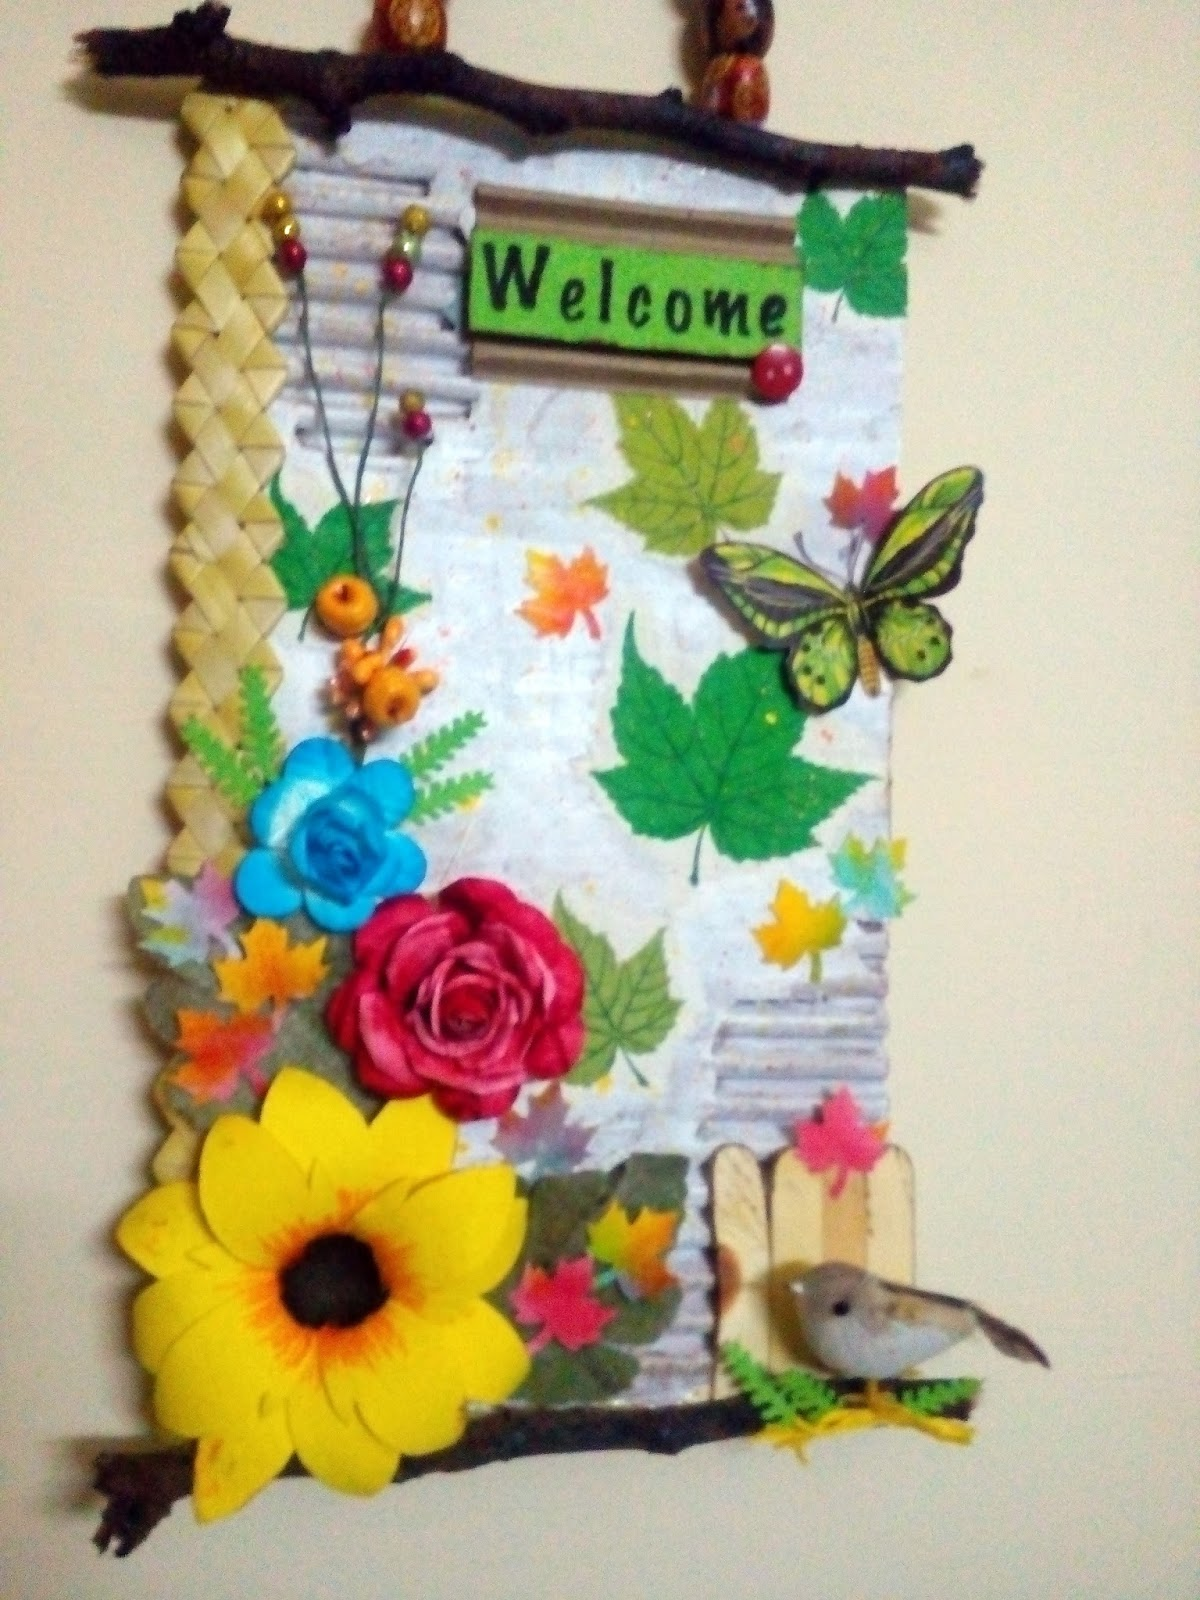 Shining colours handmade crafts welcome wall hanging for Art craft wall hanging